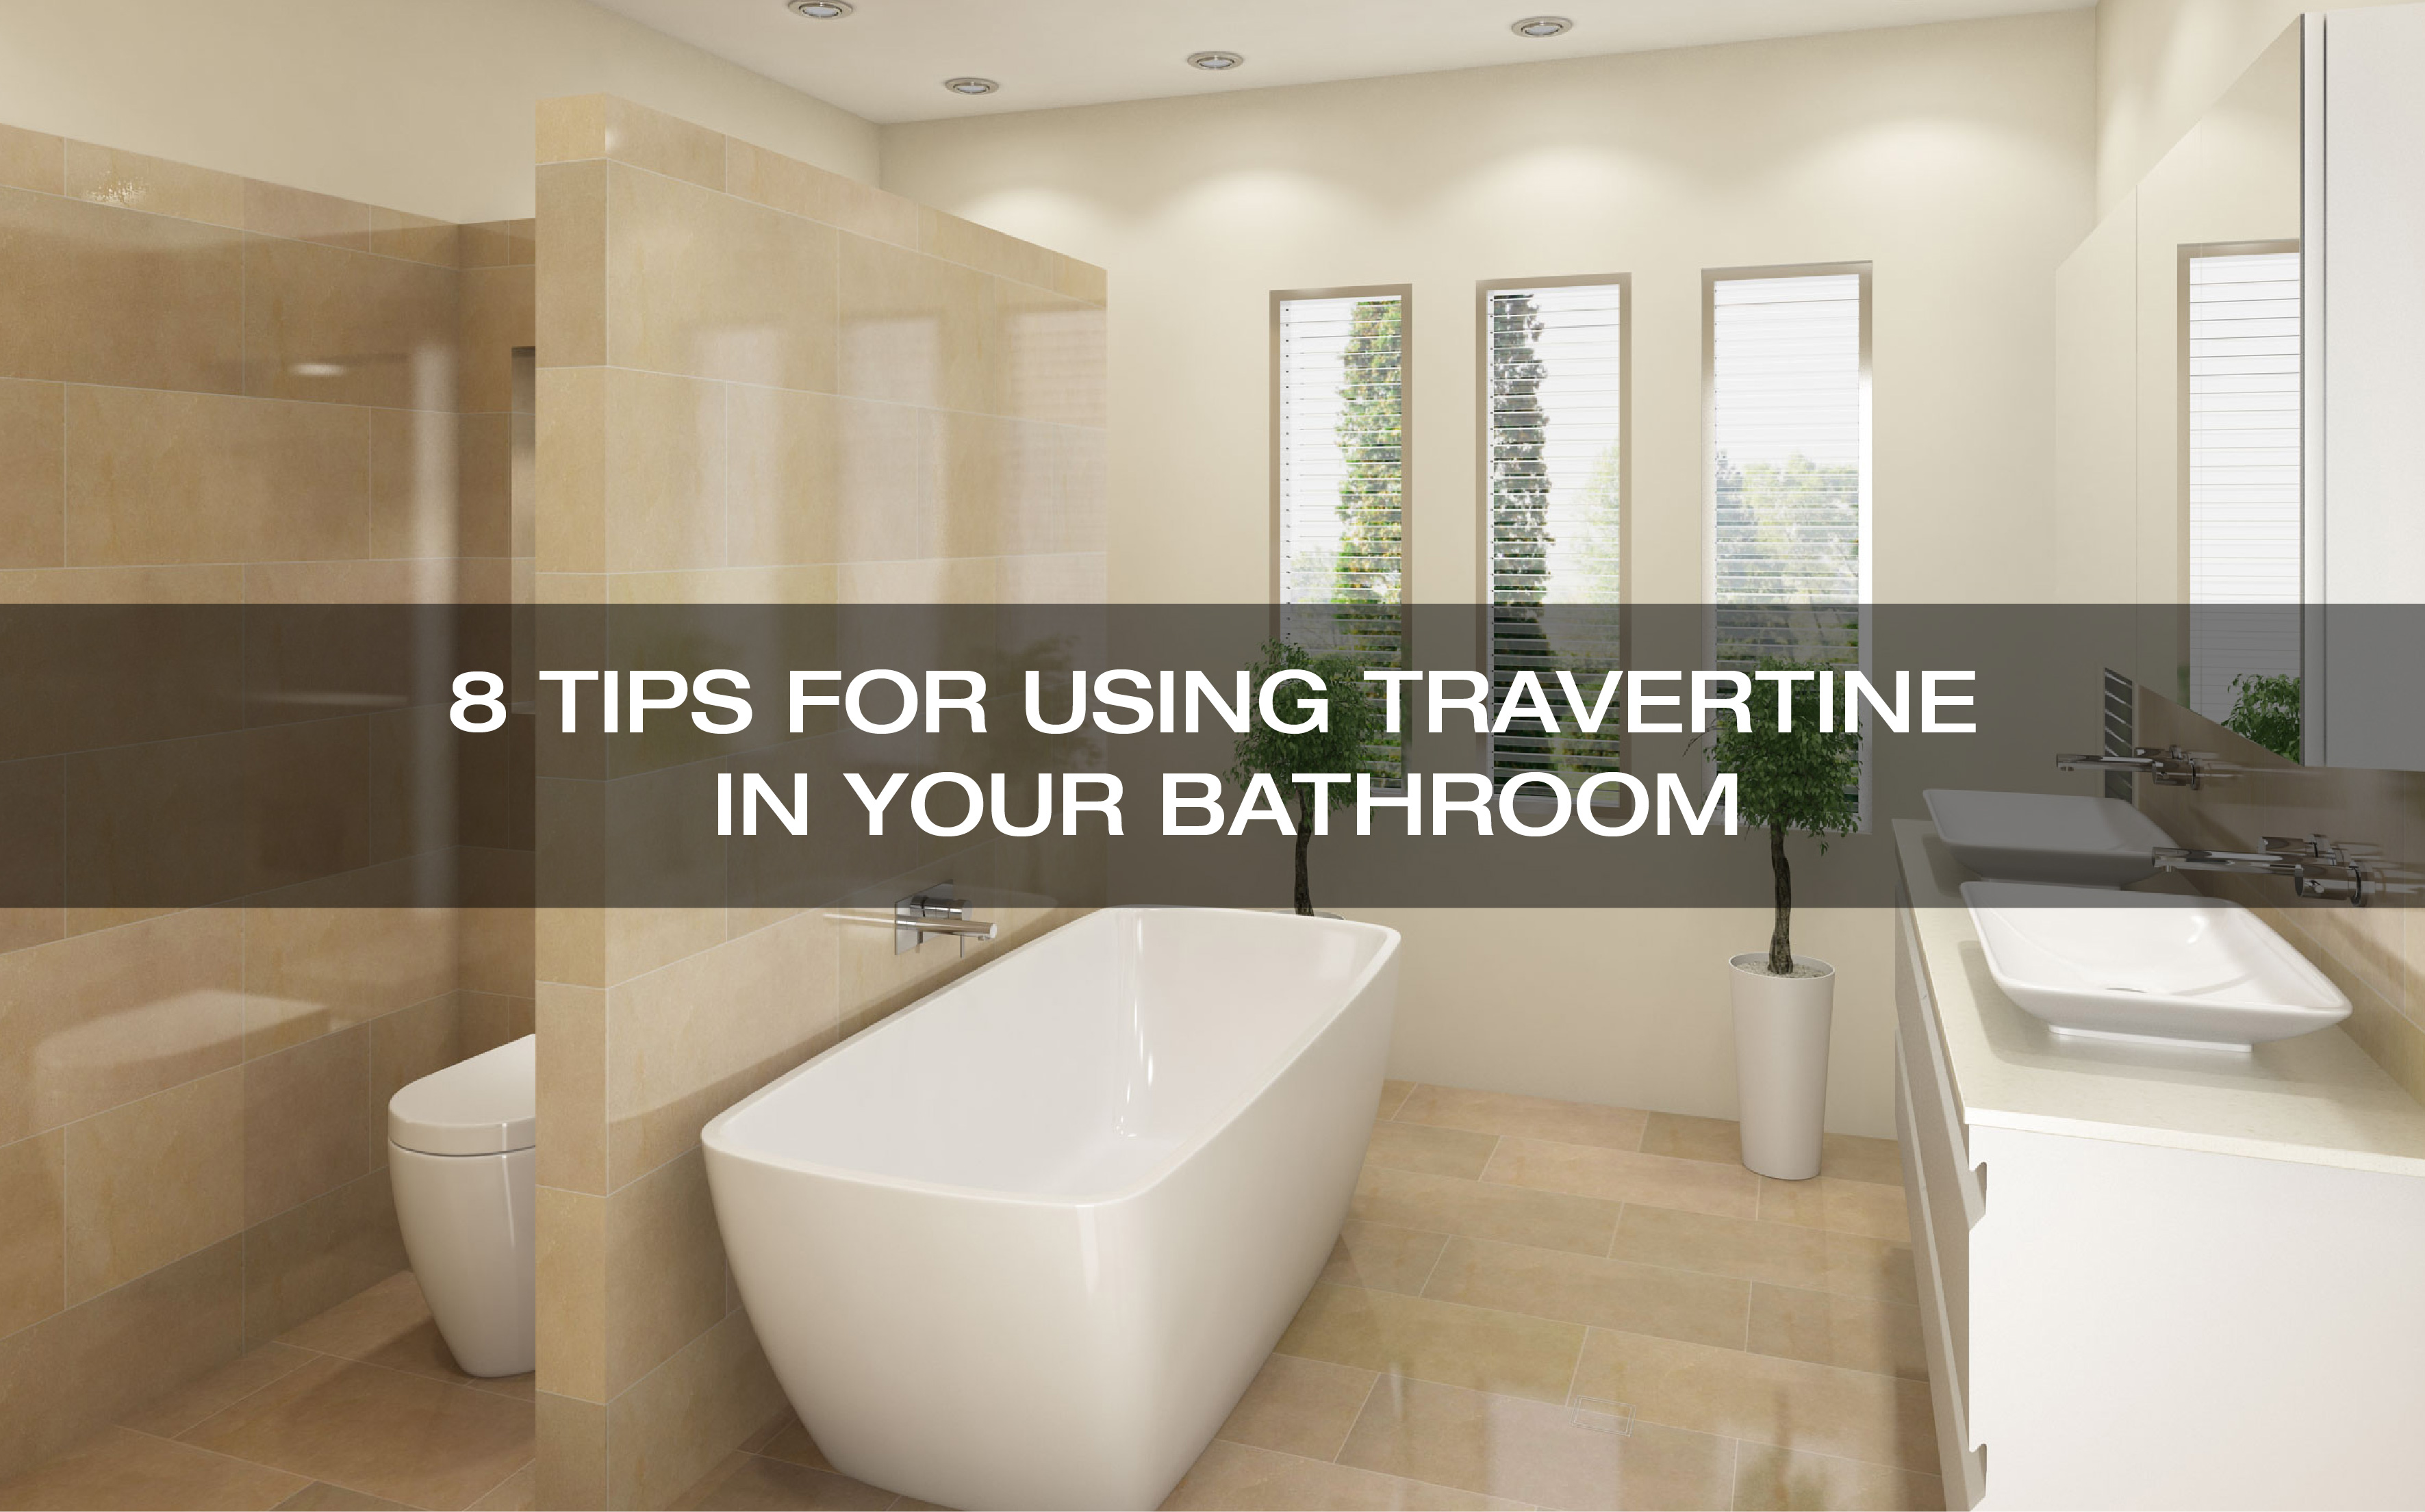 8 Best TIPS FOR USING TRAVERTINE IN YOUR BATHROOM